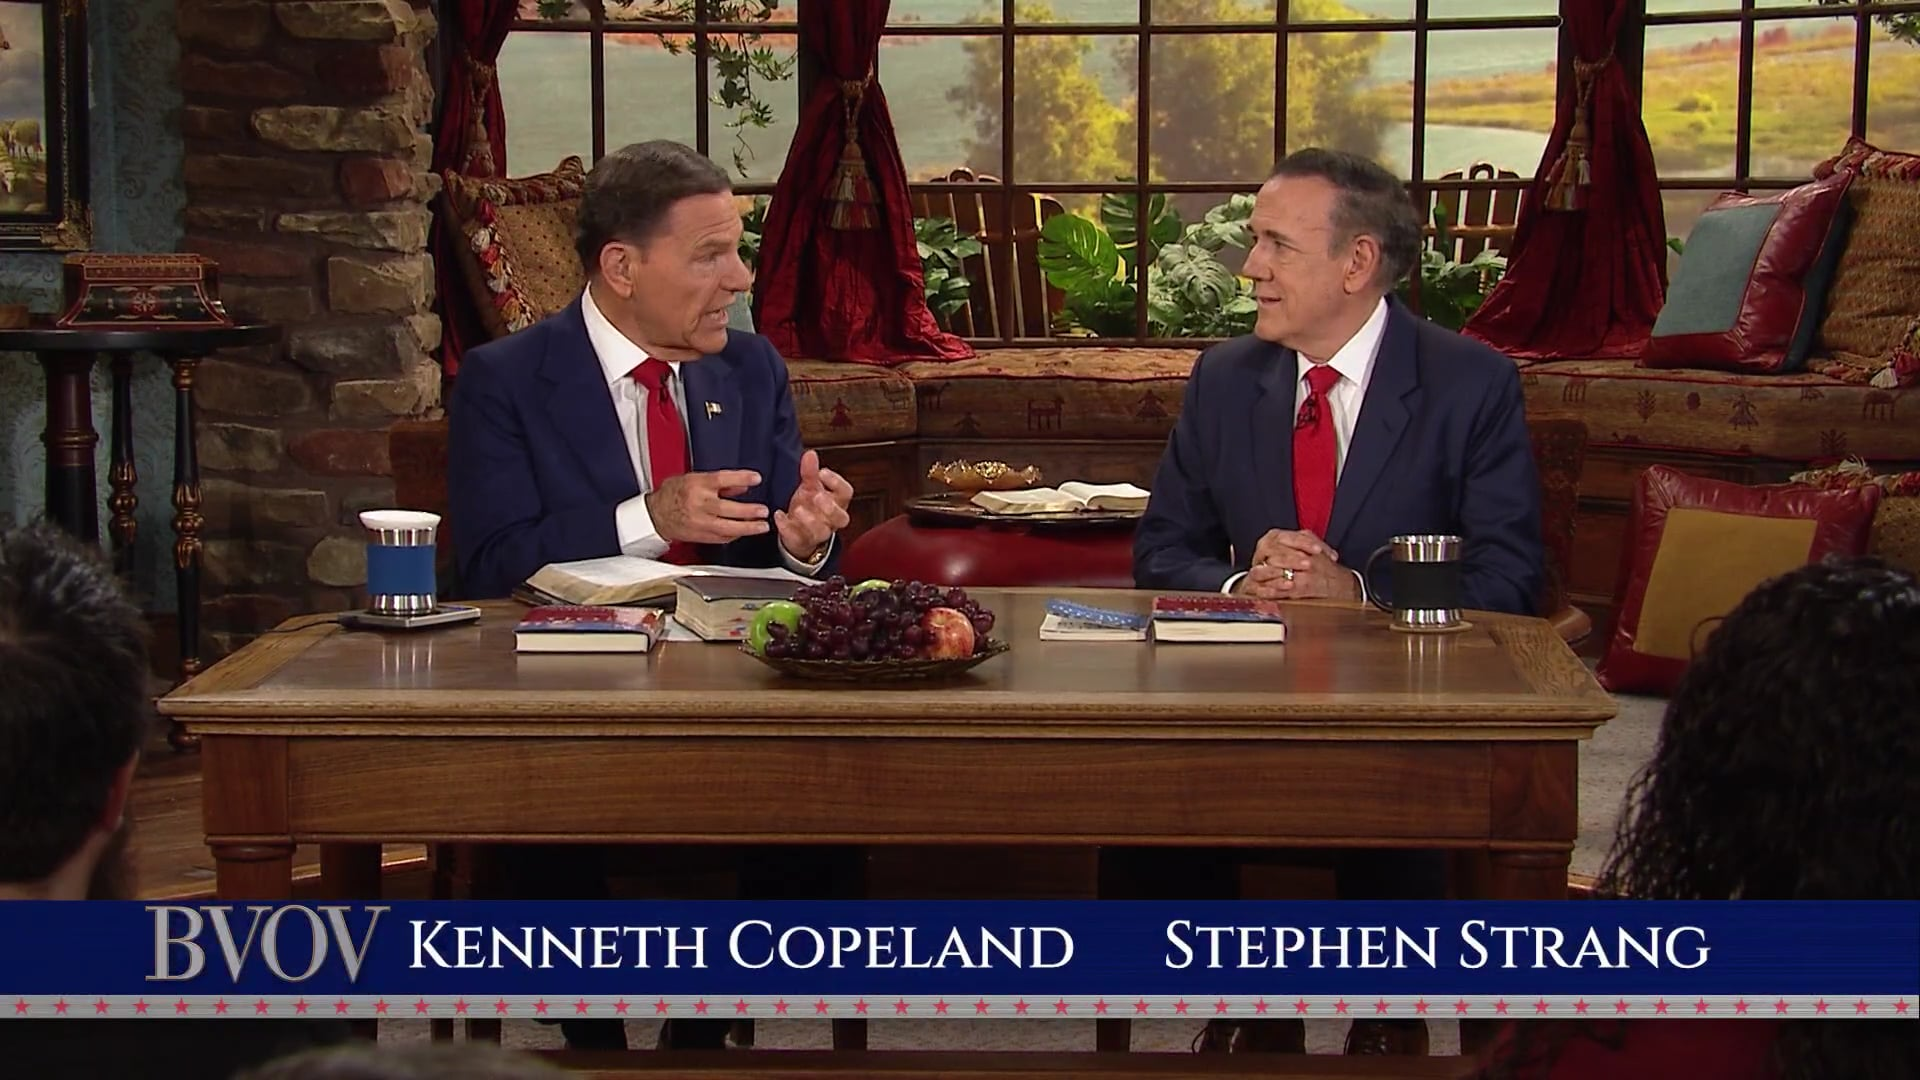 There's no doubt—America needs an awakening to God! Join Kenneth Copeland and Stephen Strang on Believer's Voice of Victory as they explain how a great awakening begins with the 2020 election. Find out why Christians must vote and take a place of authority where America is concerned. The future of America is at stake!